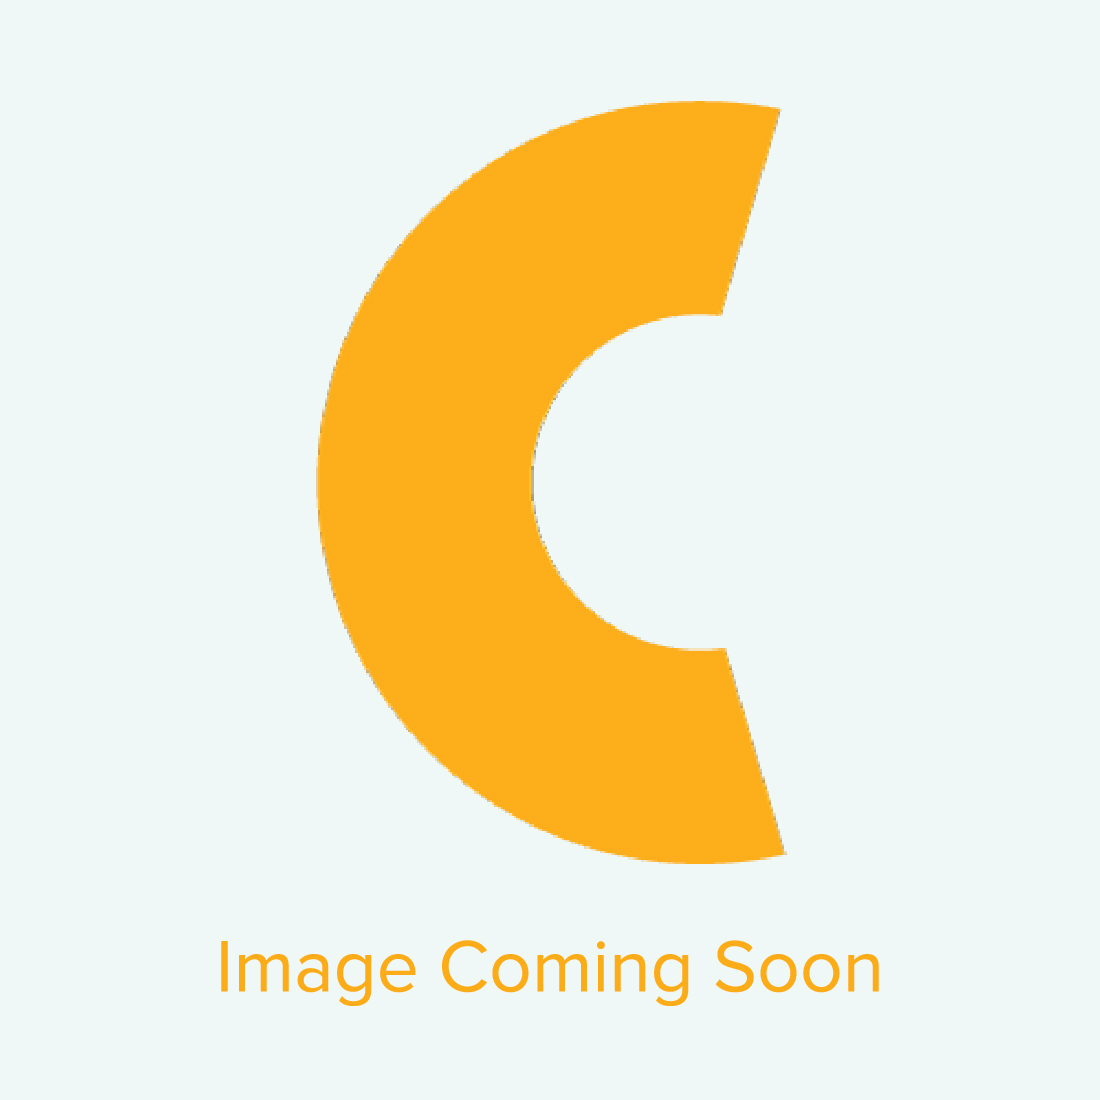 OKI Data C831TS Replacement Image Drums